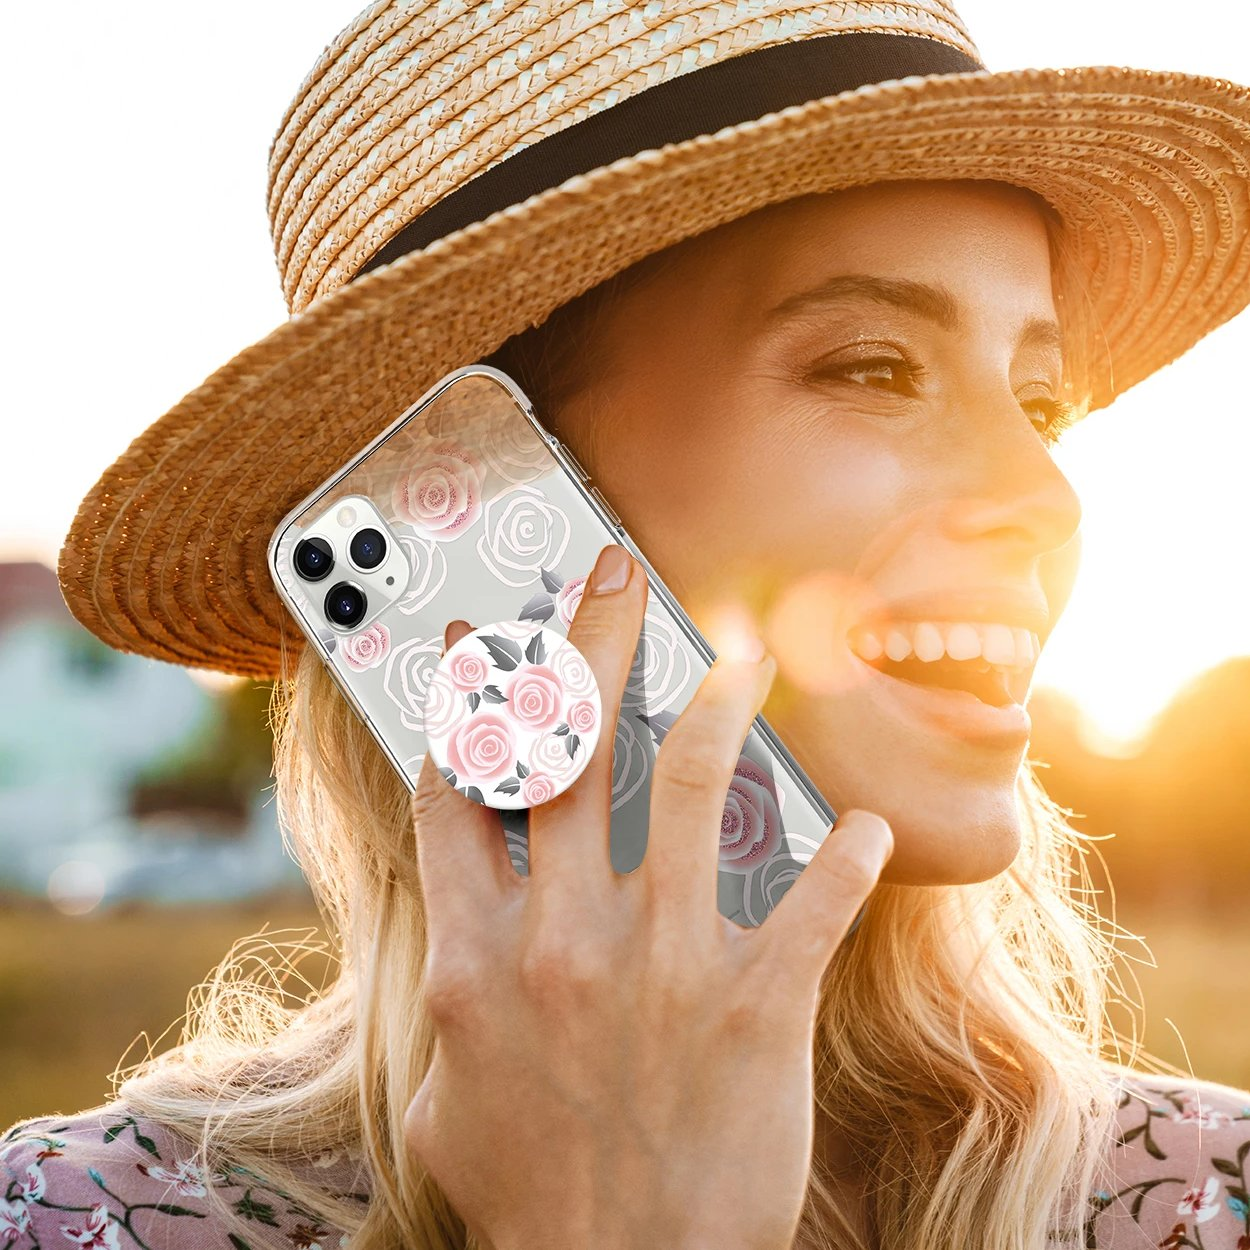 Gosh + Pop Hybrid iPhone 11 Pro Case Rosy Loves, PopSockets